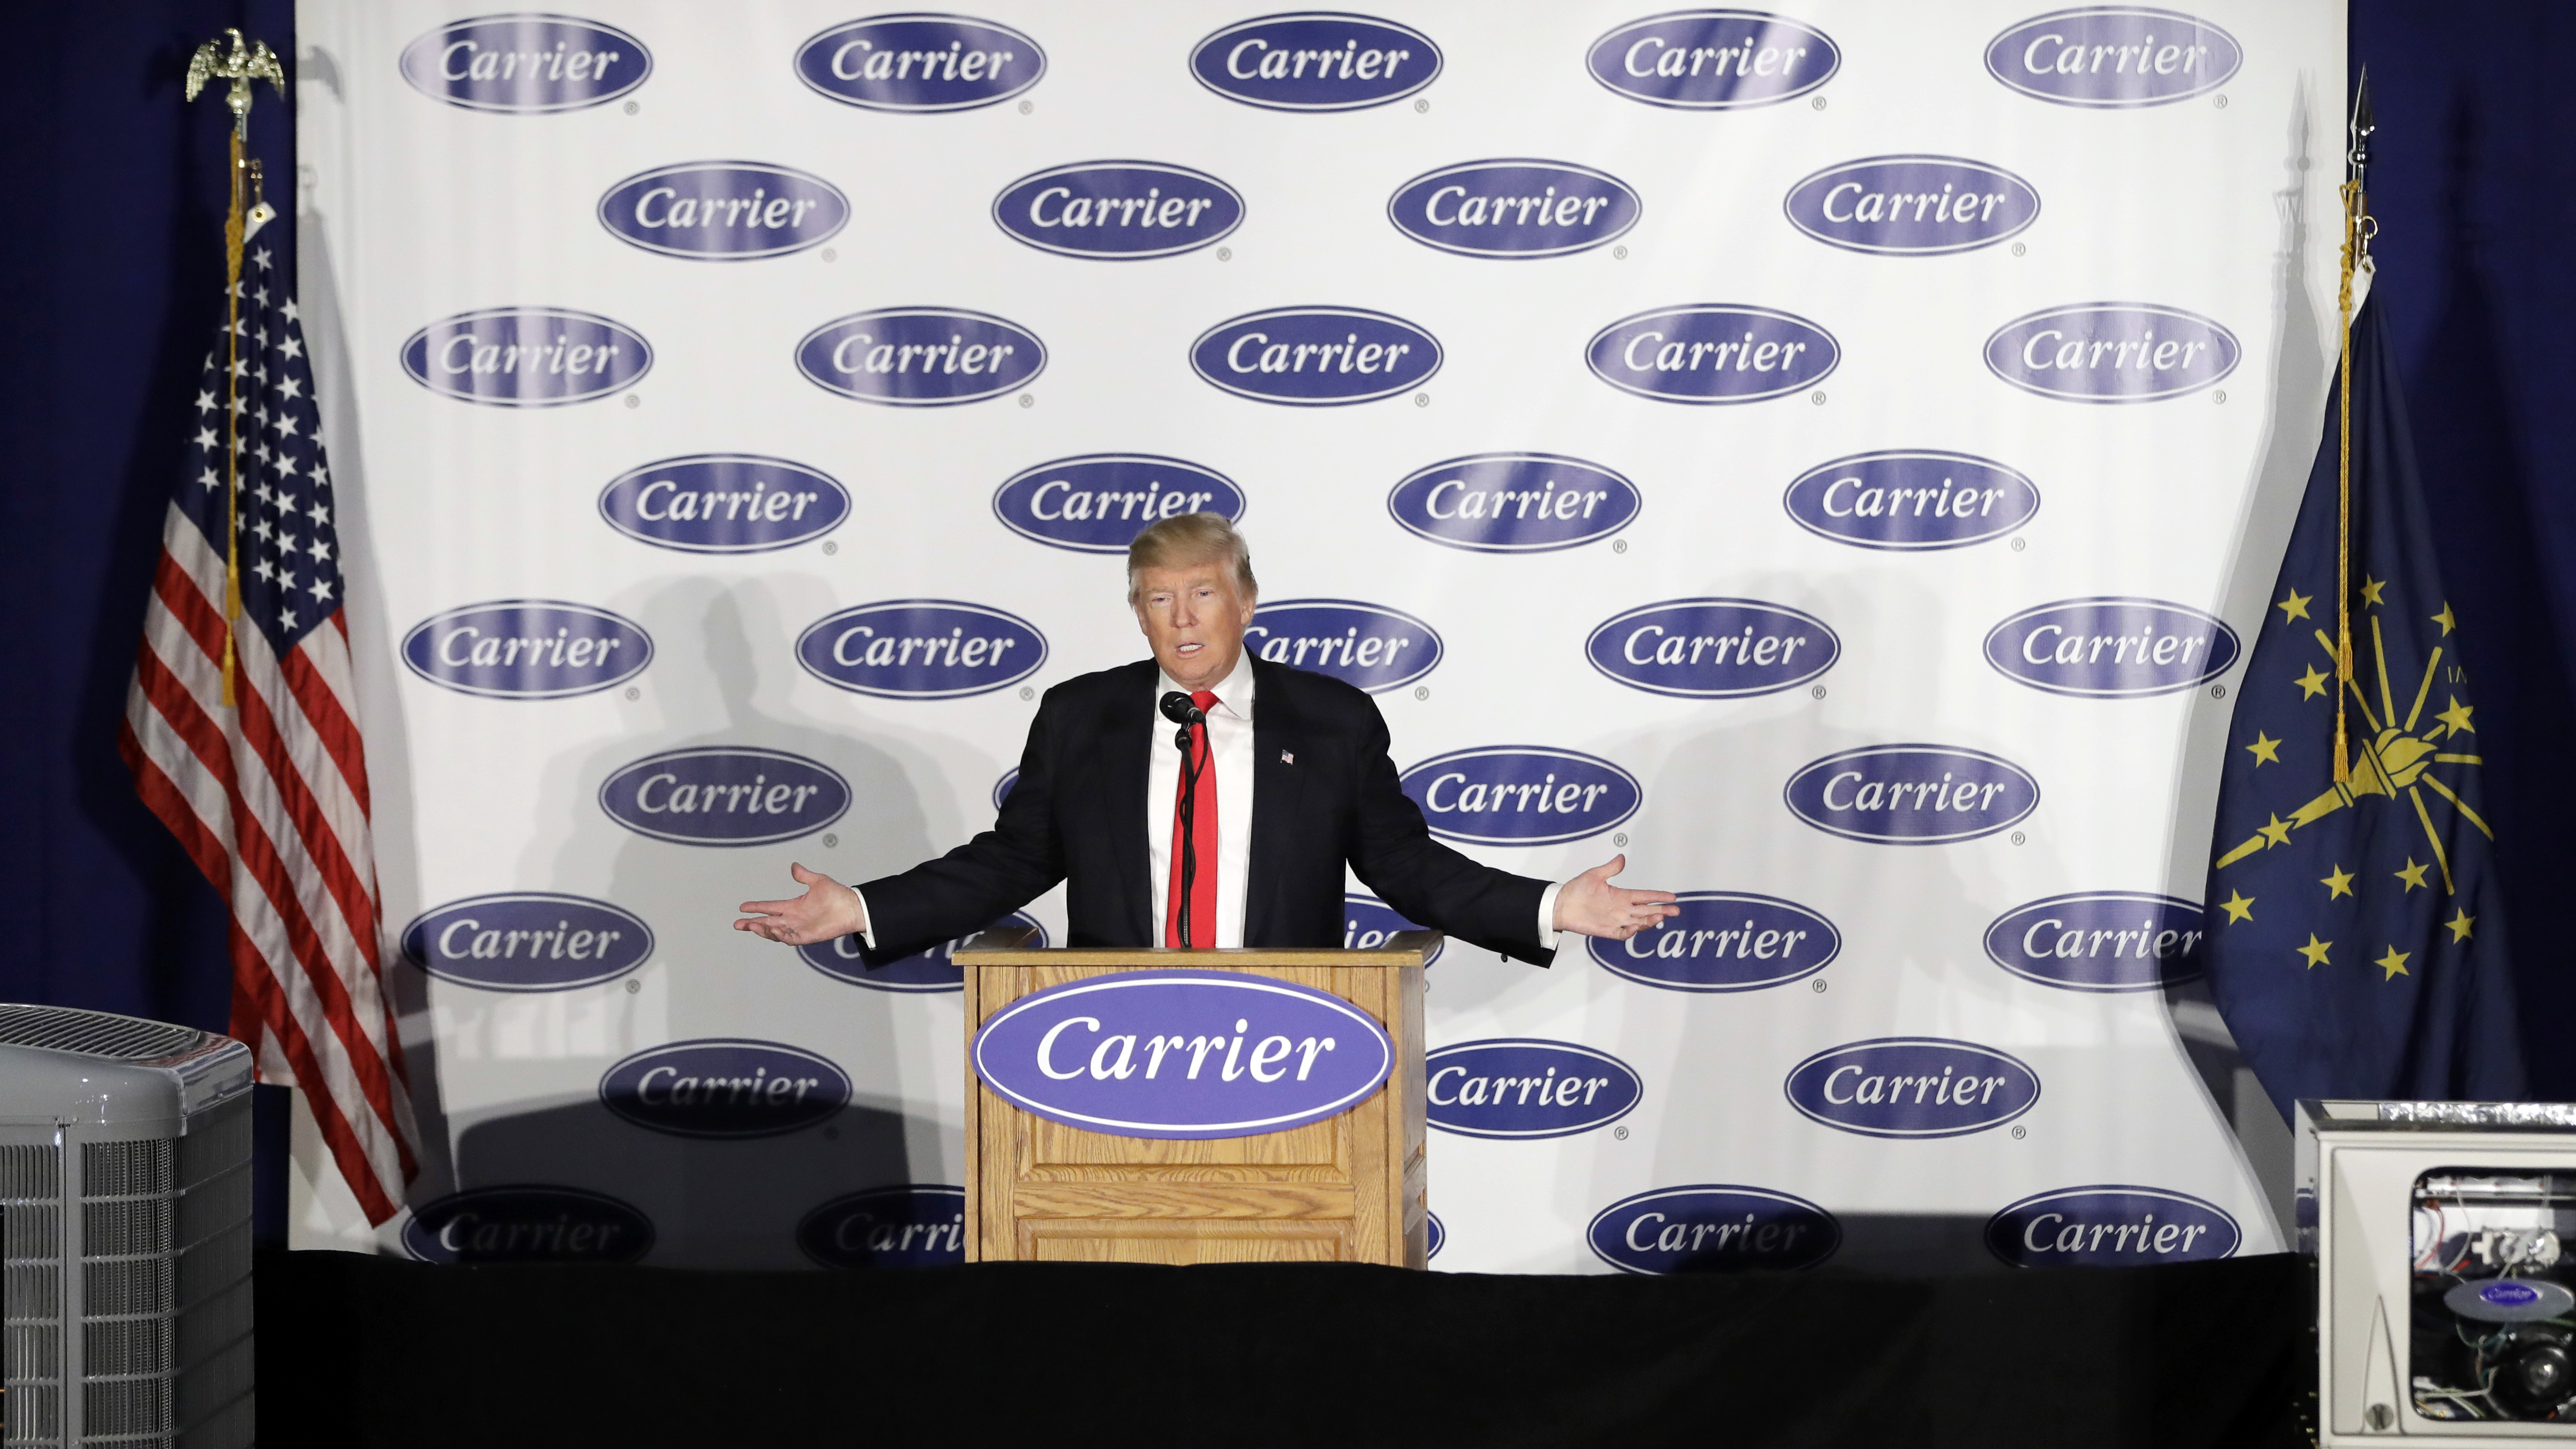 Is Trump's Deal With Carrier A Form Of Crony Capitalism?